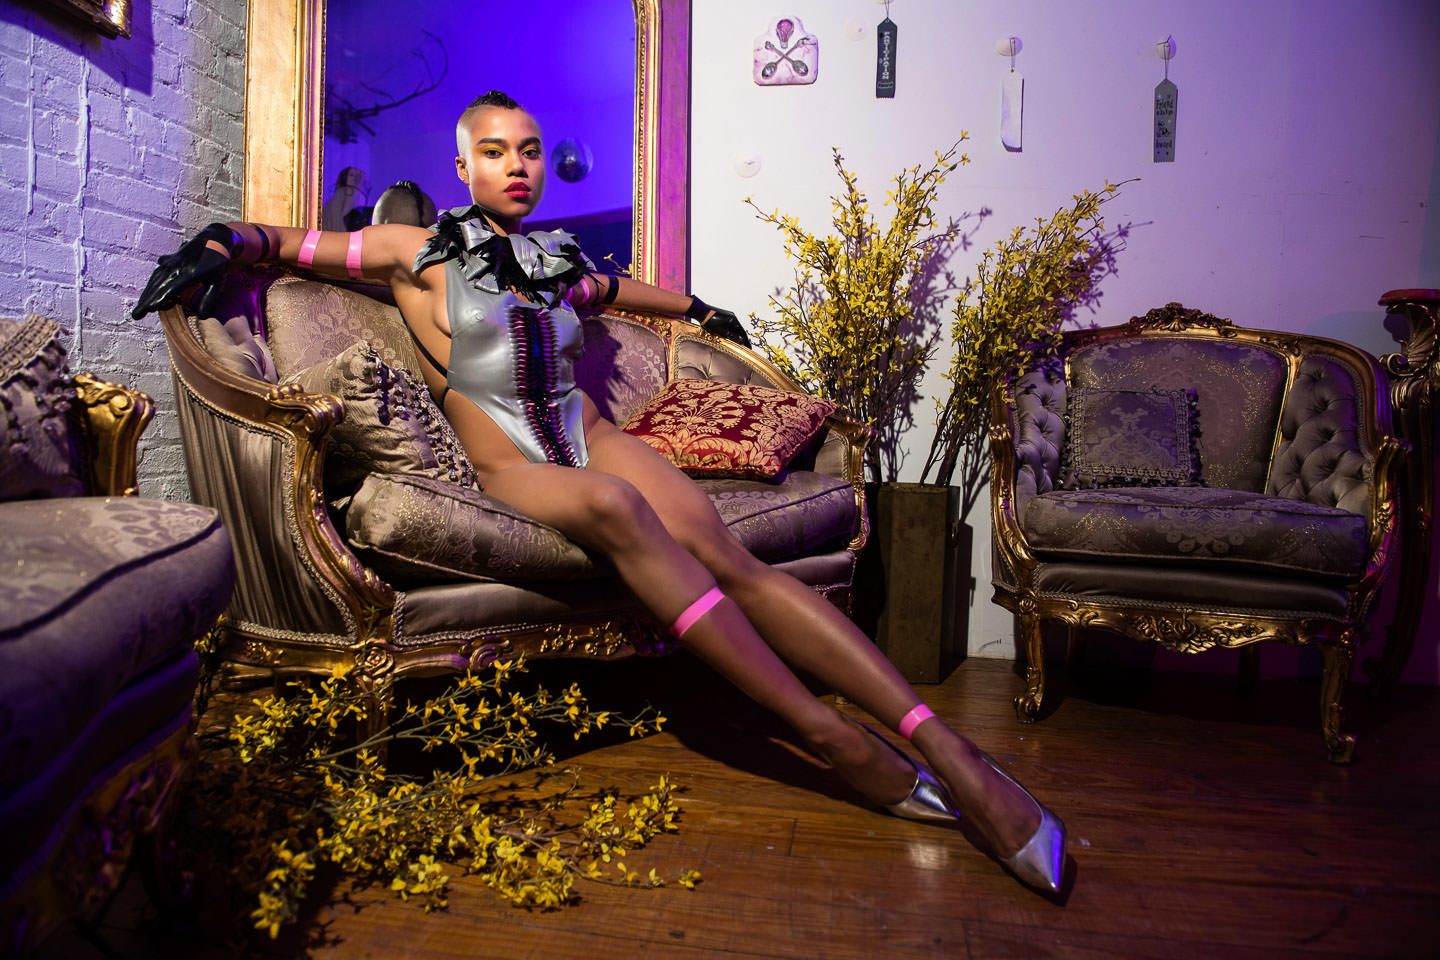 black female model sitting on golden couch with mirror in the background and surrounded by yellow flowers